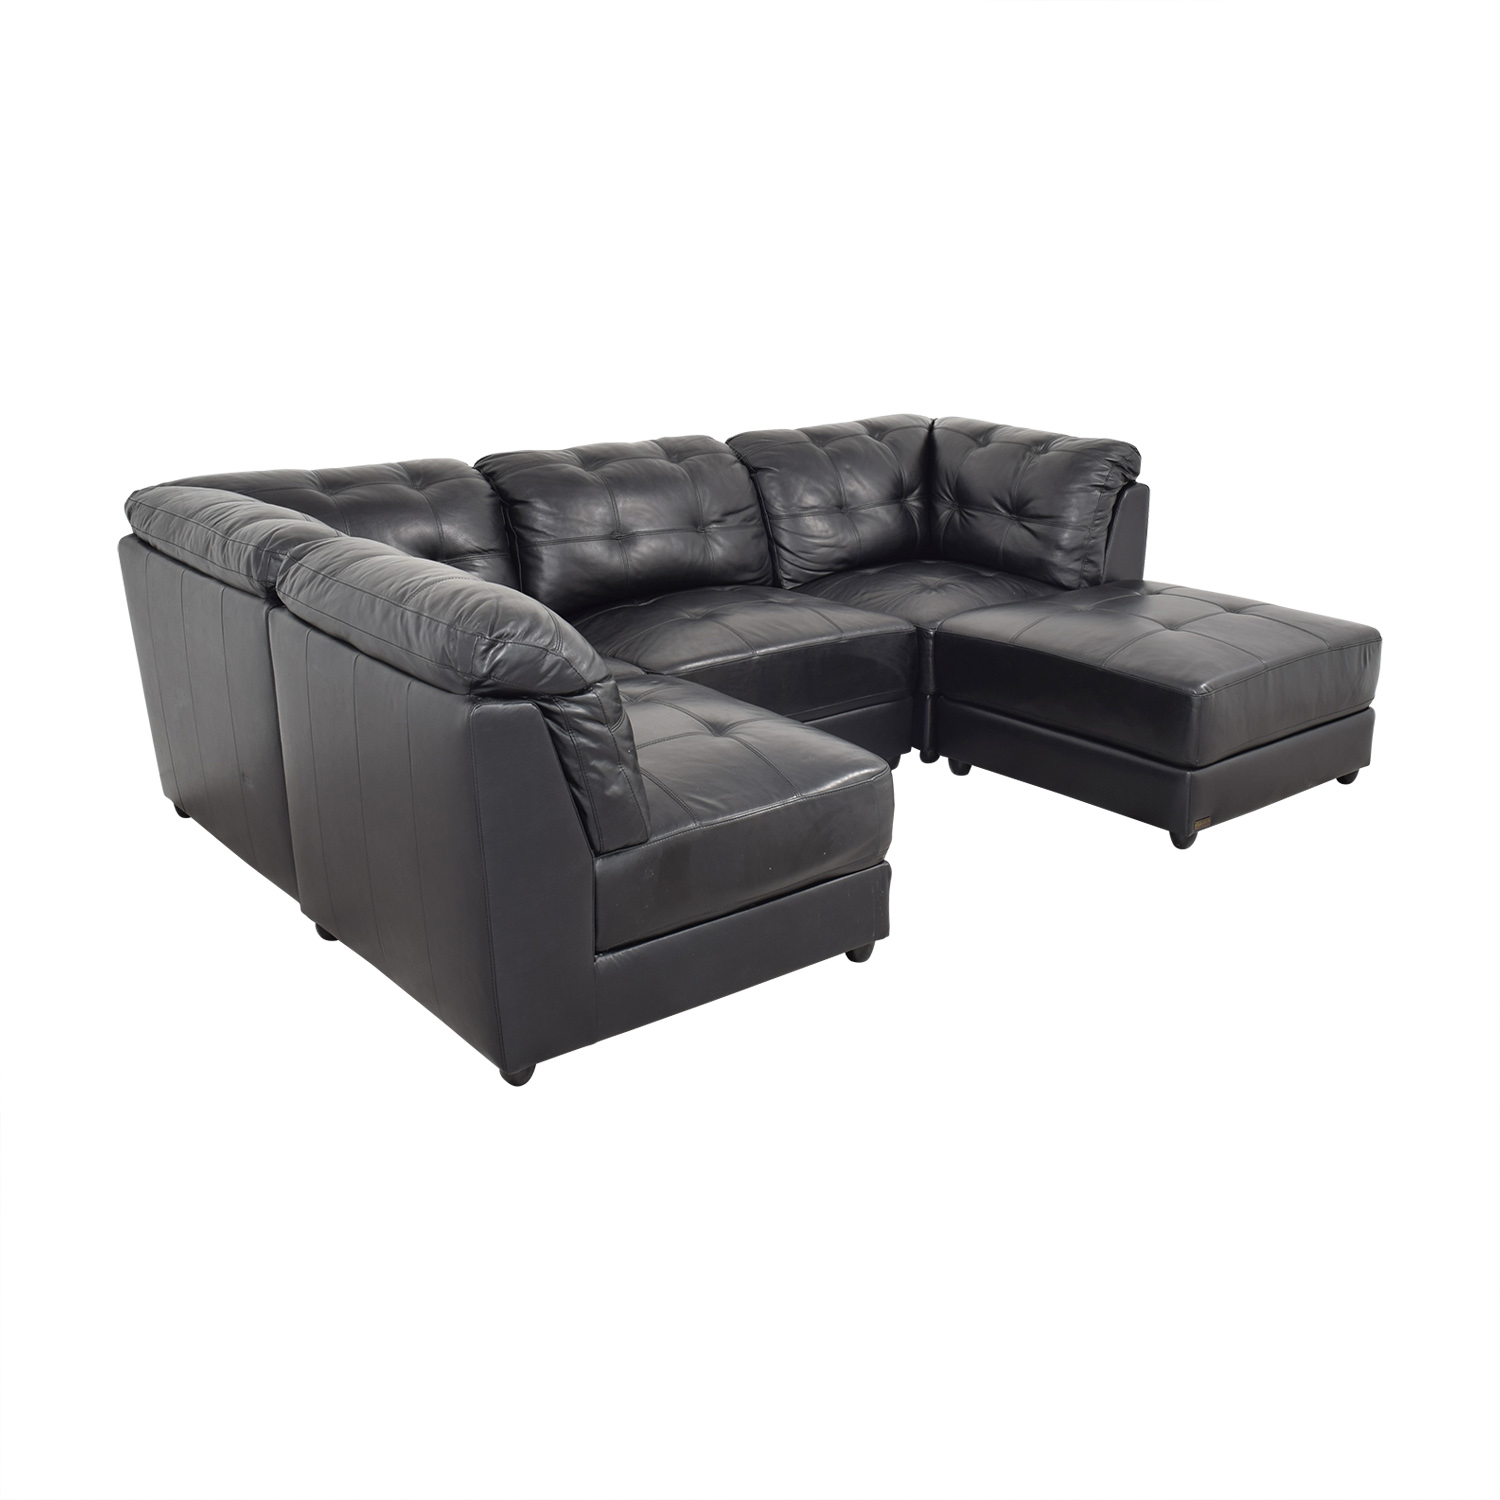 Abbyson Ella 5-Piece Black Modular Leather Sectional with Ottoman / Sectionals